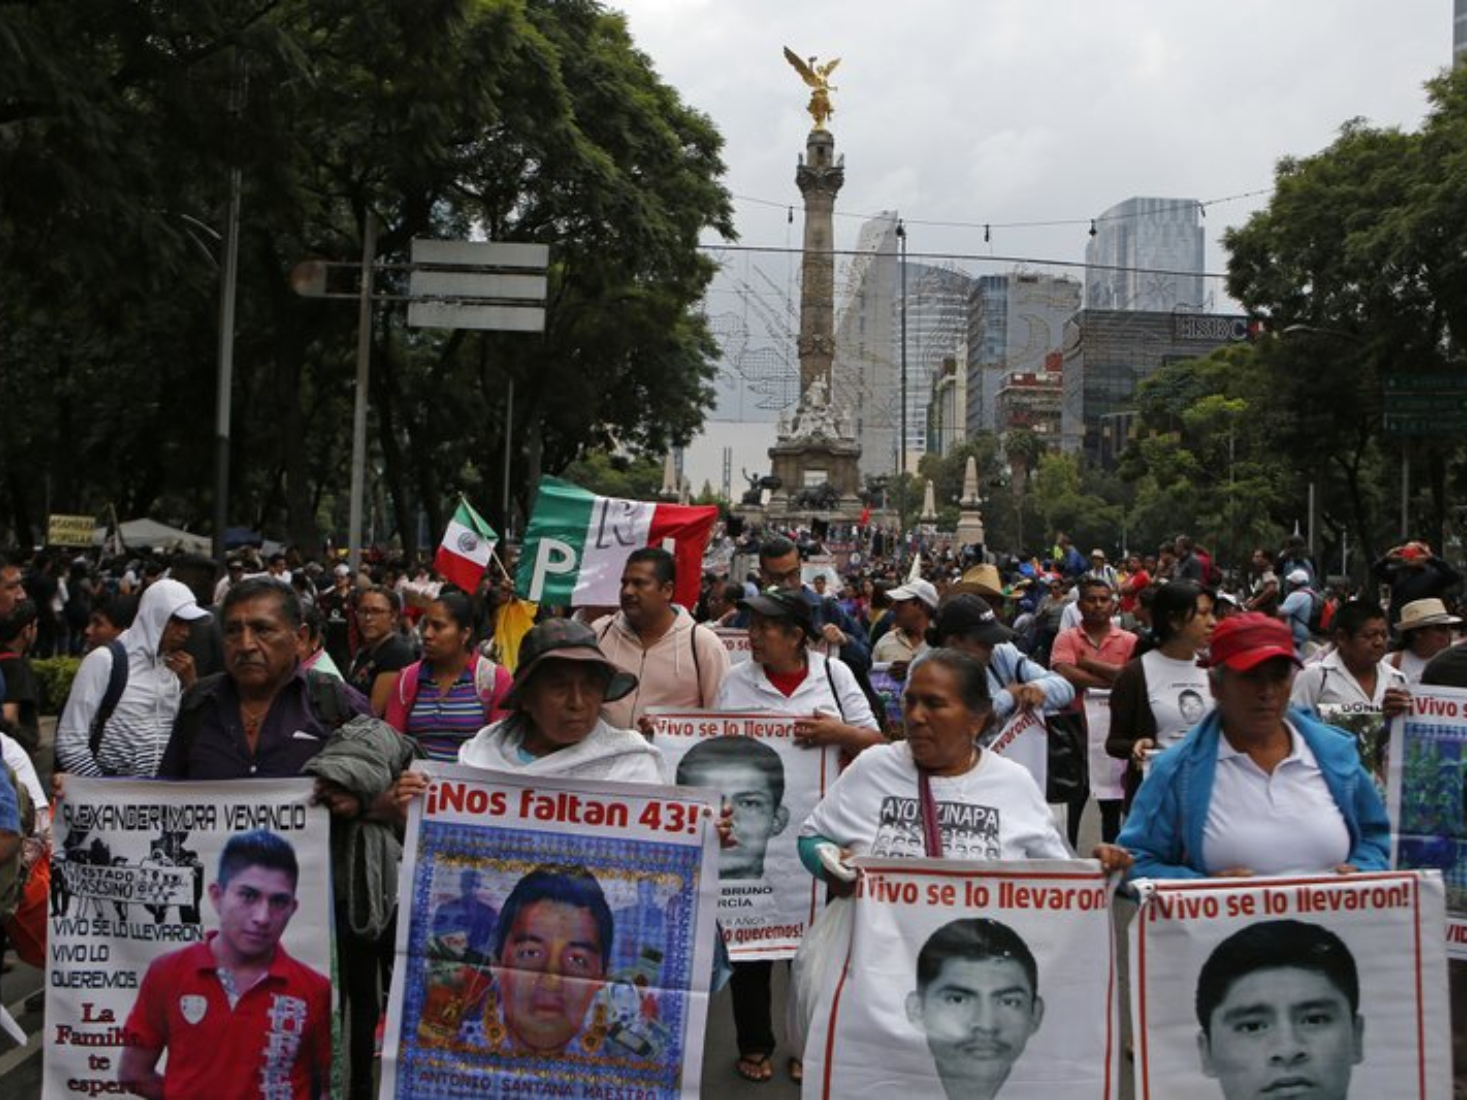 Investigators to reopen case of Mexico's 43 missing